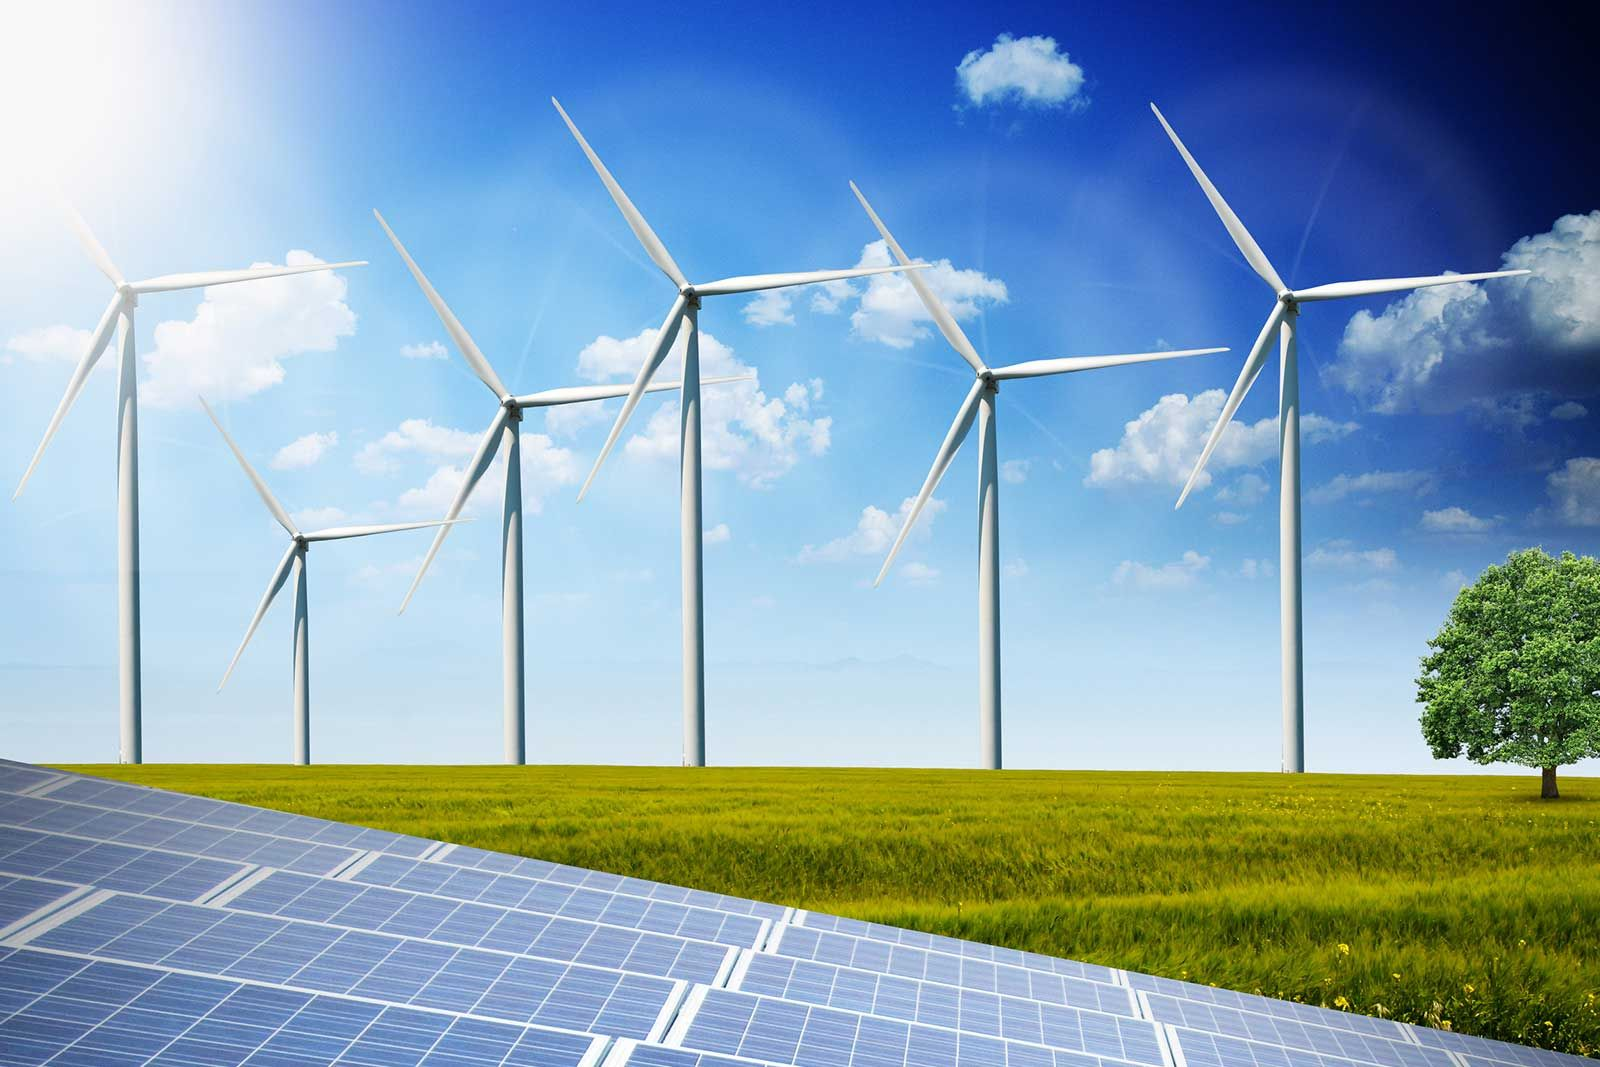 Investment in renewable energies